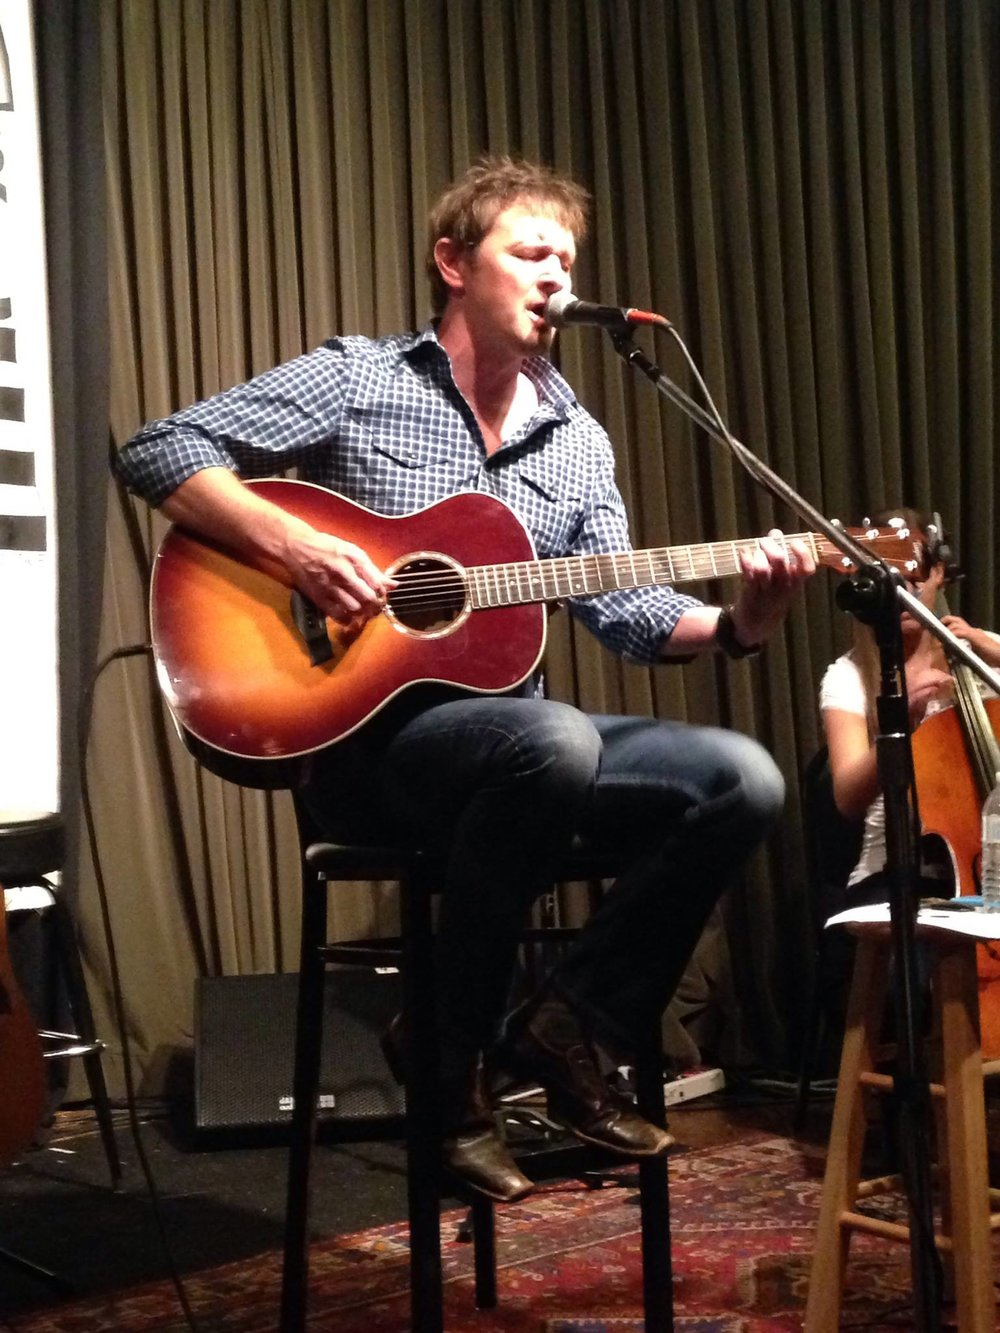 Mark Miller — September 30, 2017 — Red Light Café, Atlanta, GA